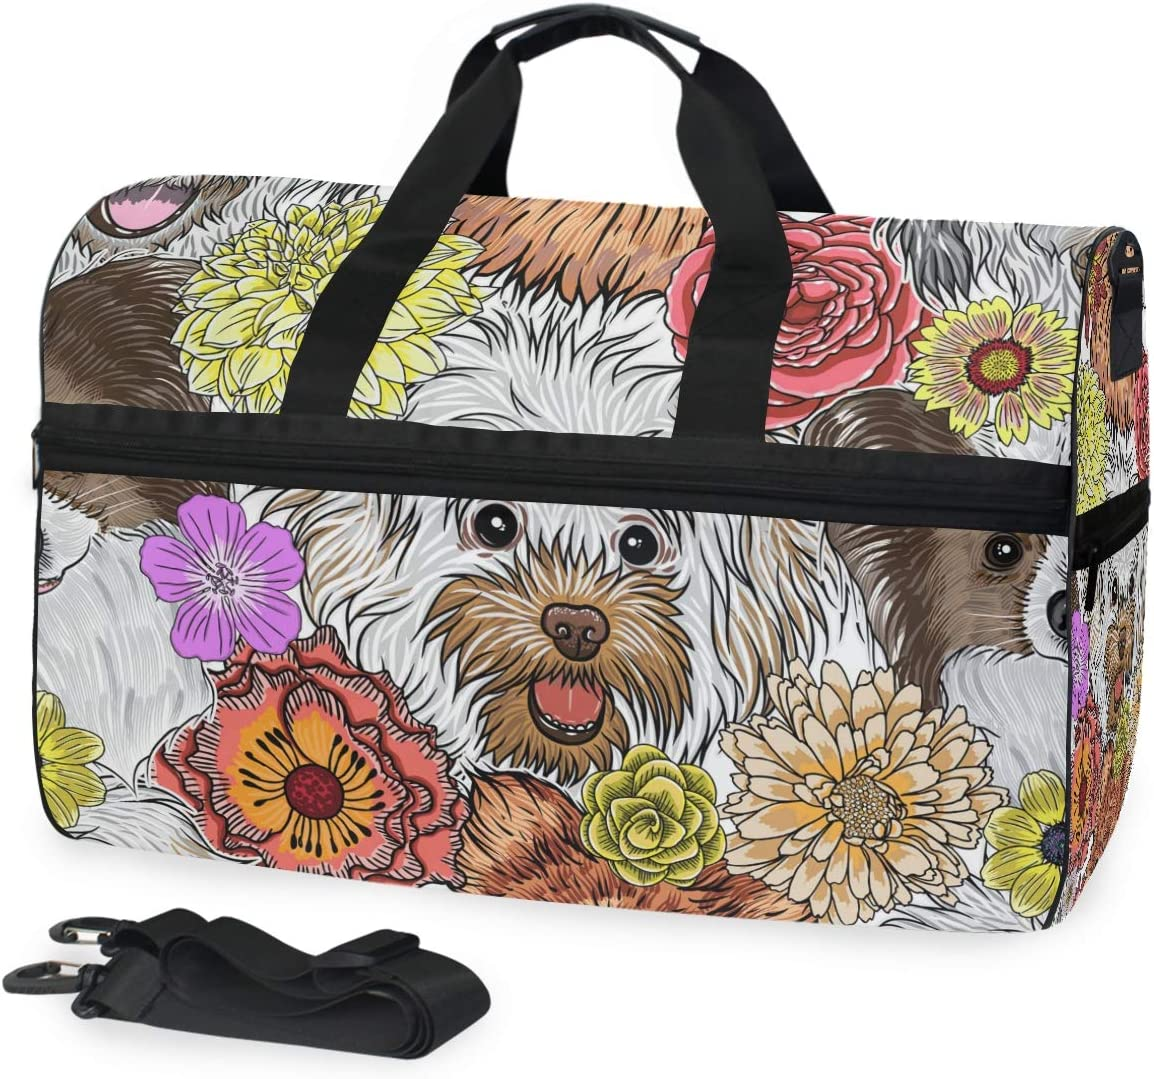 Cute Dogs Sports Gym Bag with Shoes Compartment Travel Duffel Bag for Men and Women